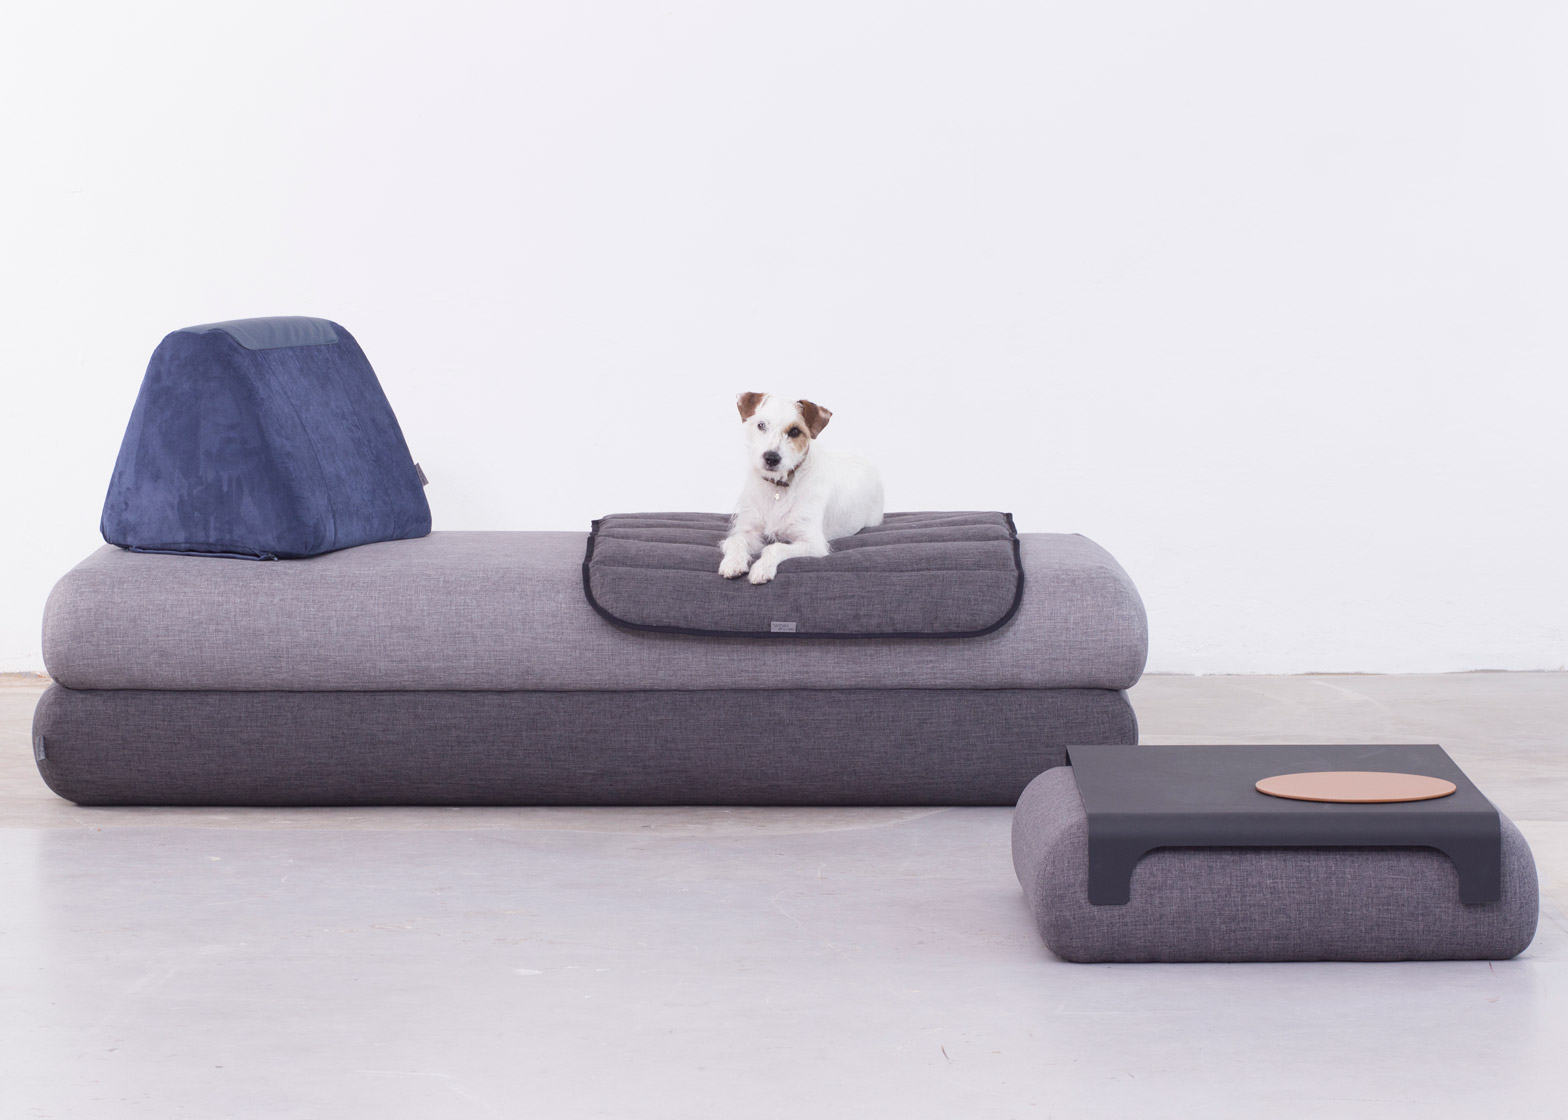 Urban Nomad sofa designed by Anikó Rácz for Hannabi